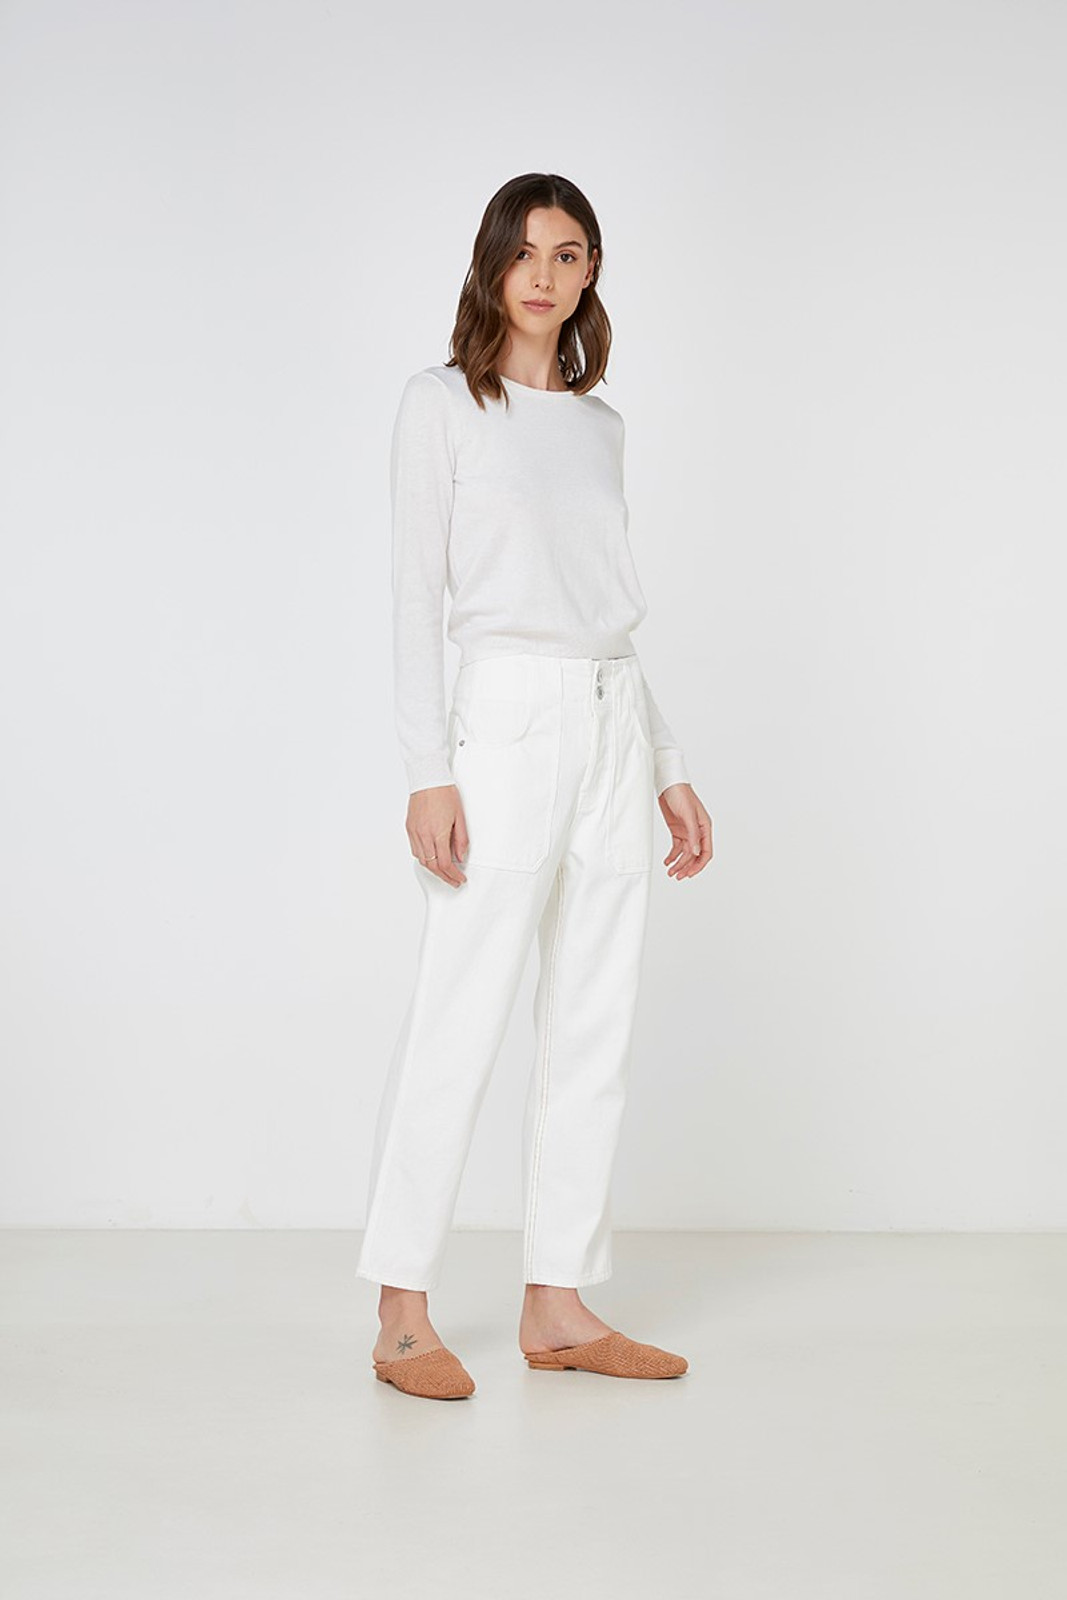 Elka Collective Gale Knit White  6